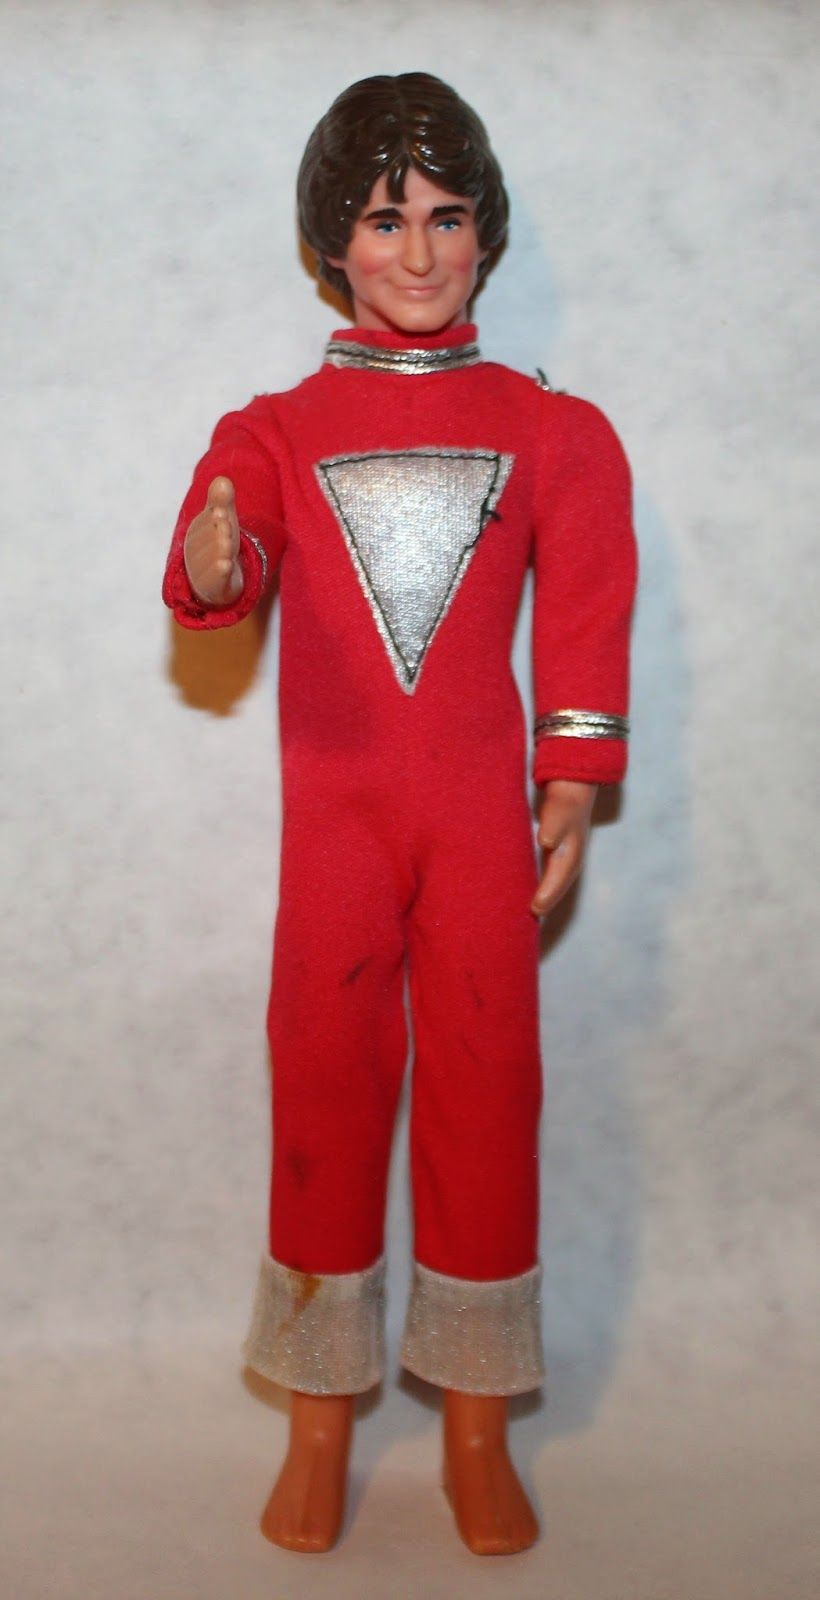 The Dolls Between Us: PLANET OF THE DOLLS: Doll-A-Day 204: Mork By Mattel